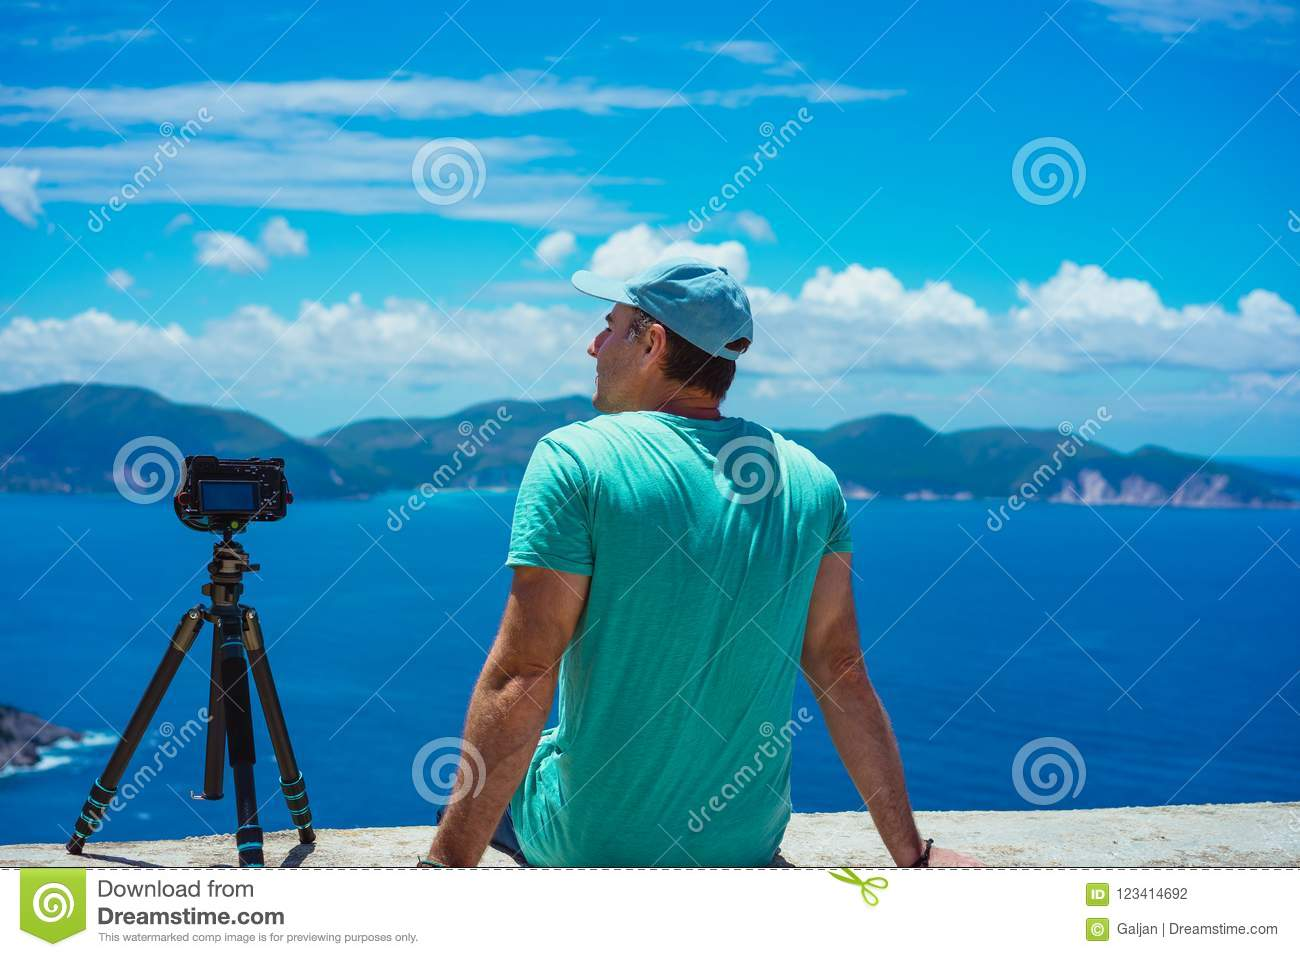 Summer holiday visiting Greece. Male photographer enjoying to capture time lapse cloudscape, coastline and sea with